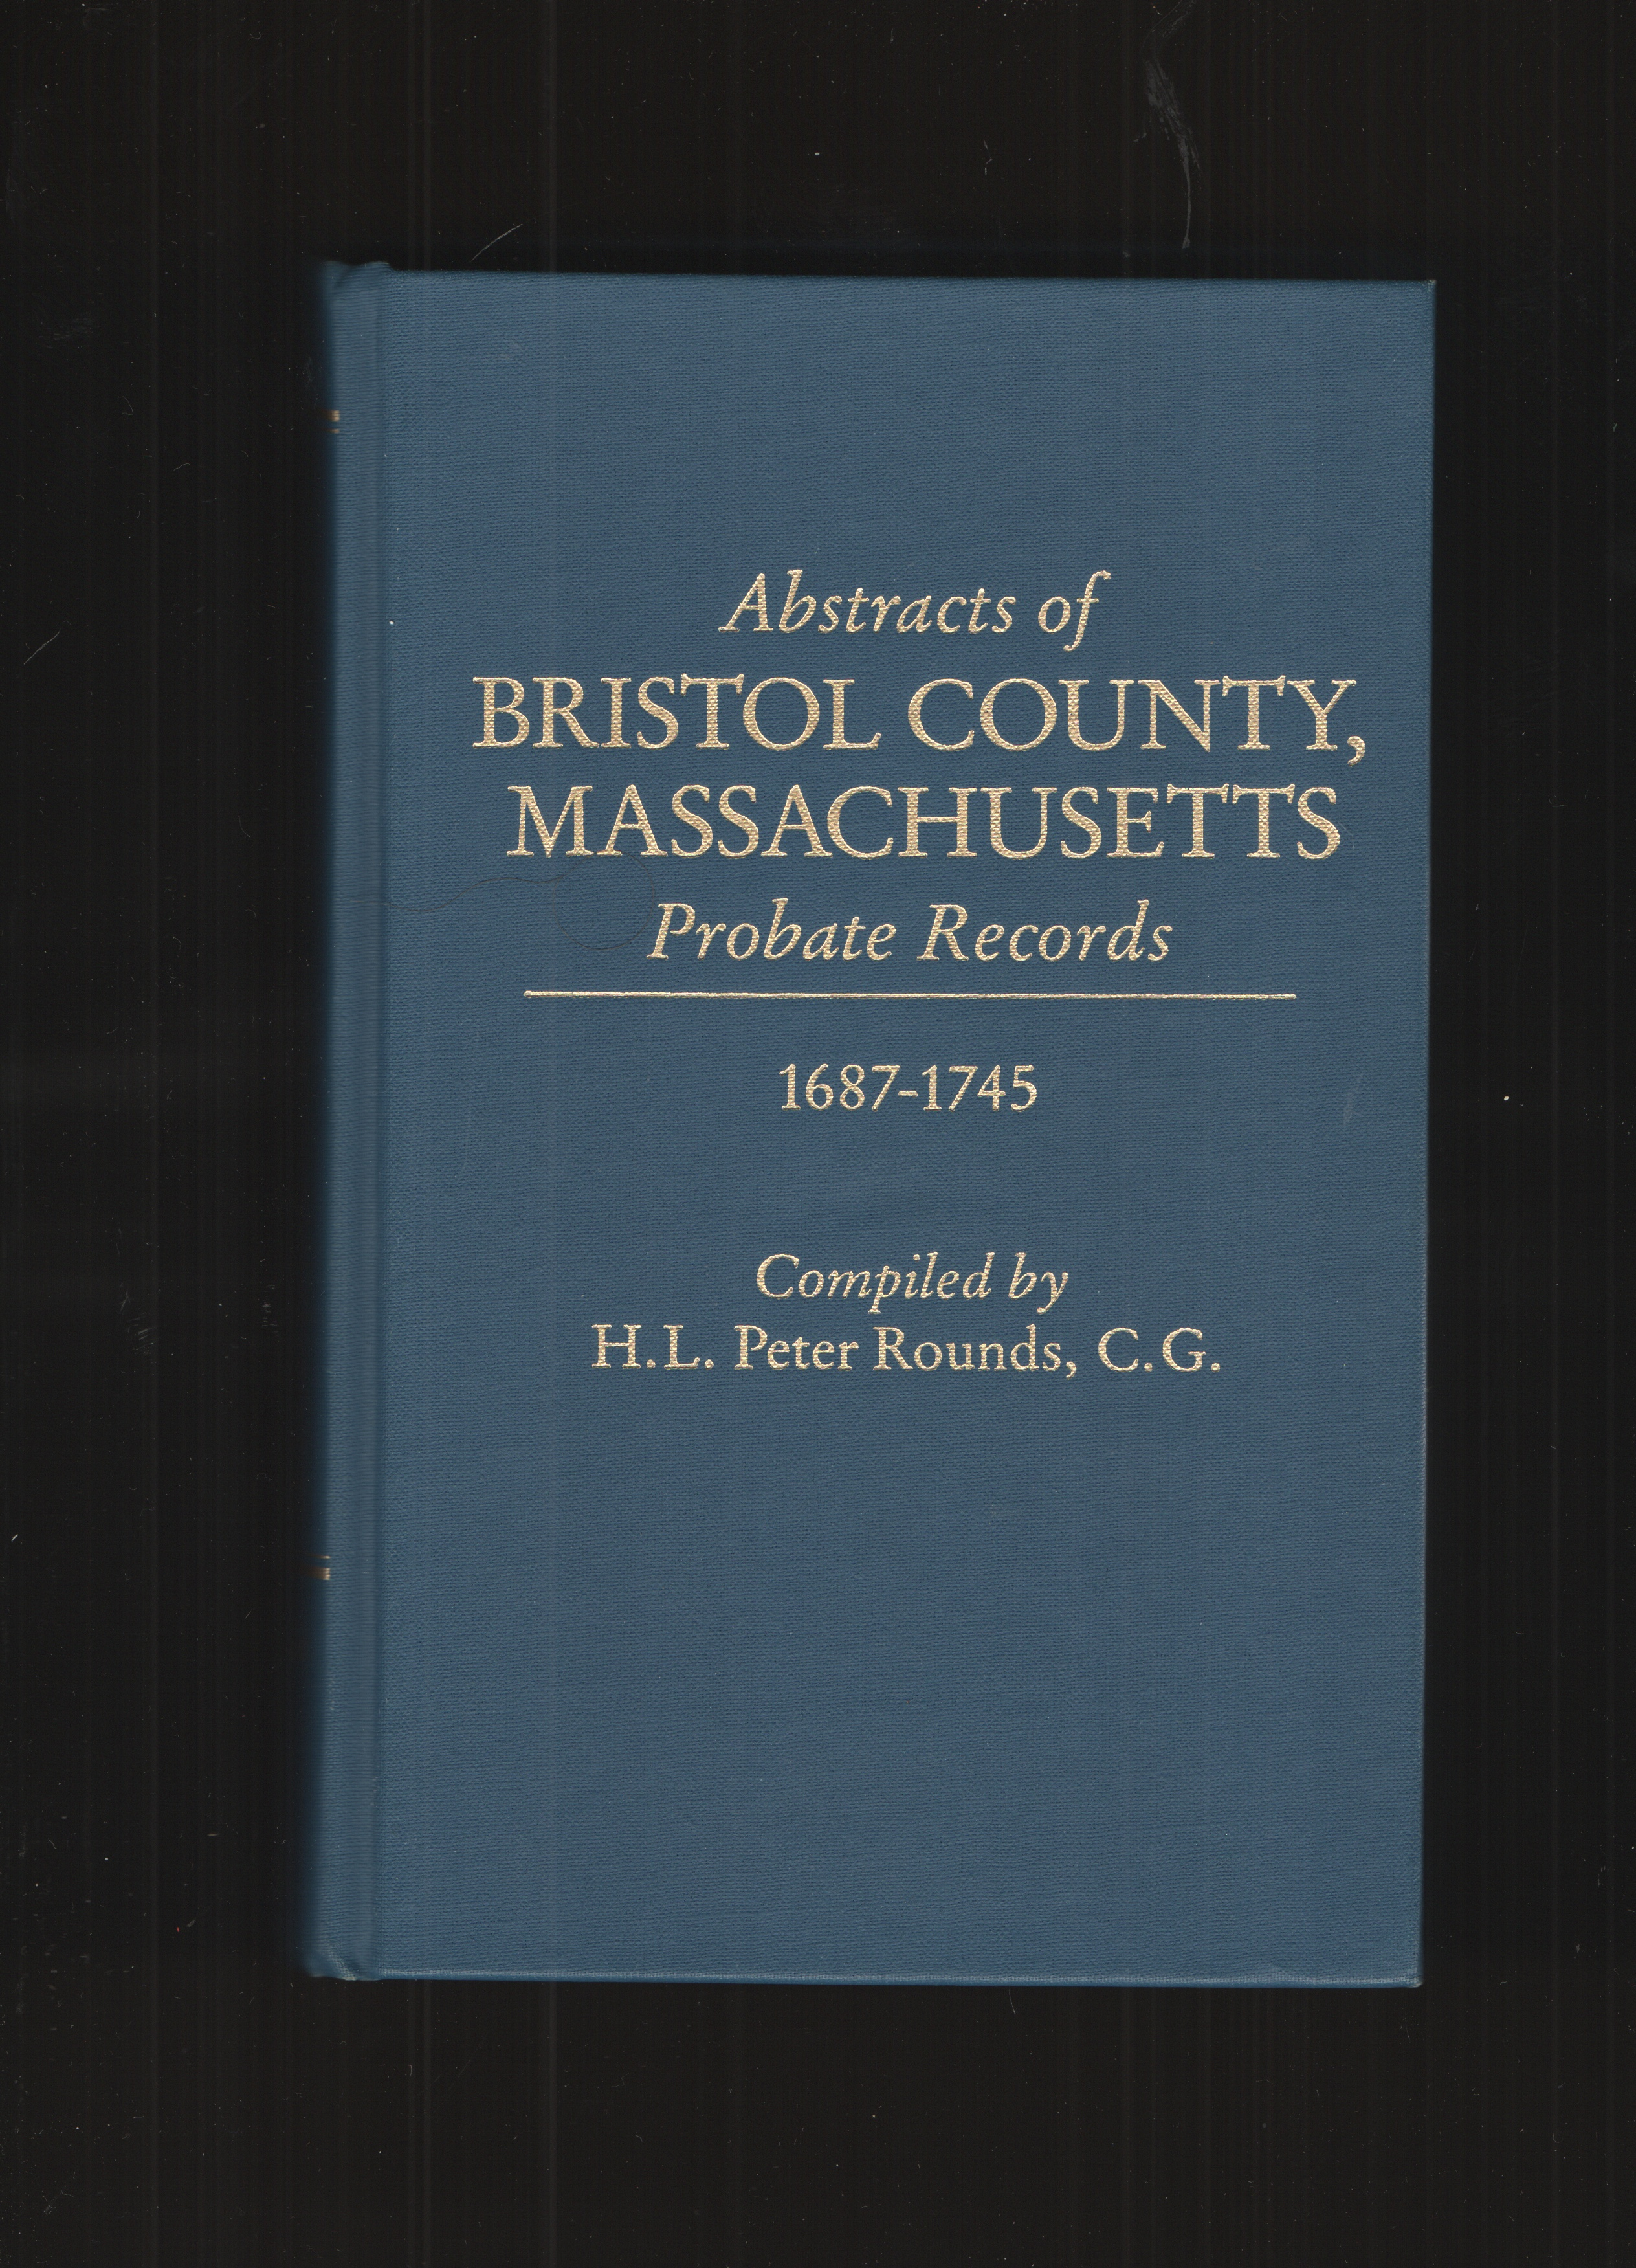 Image for Abstracts of Bristol County, Massachusetts - Hardcover Probate Records 1687-1745